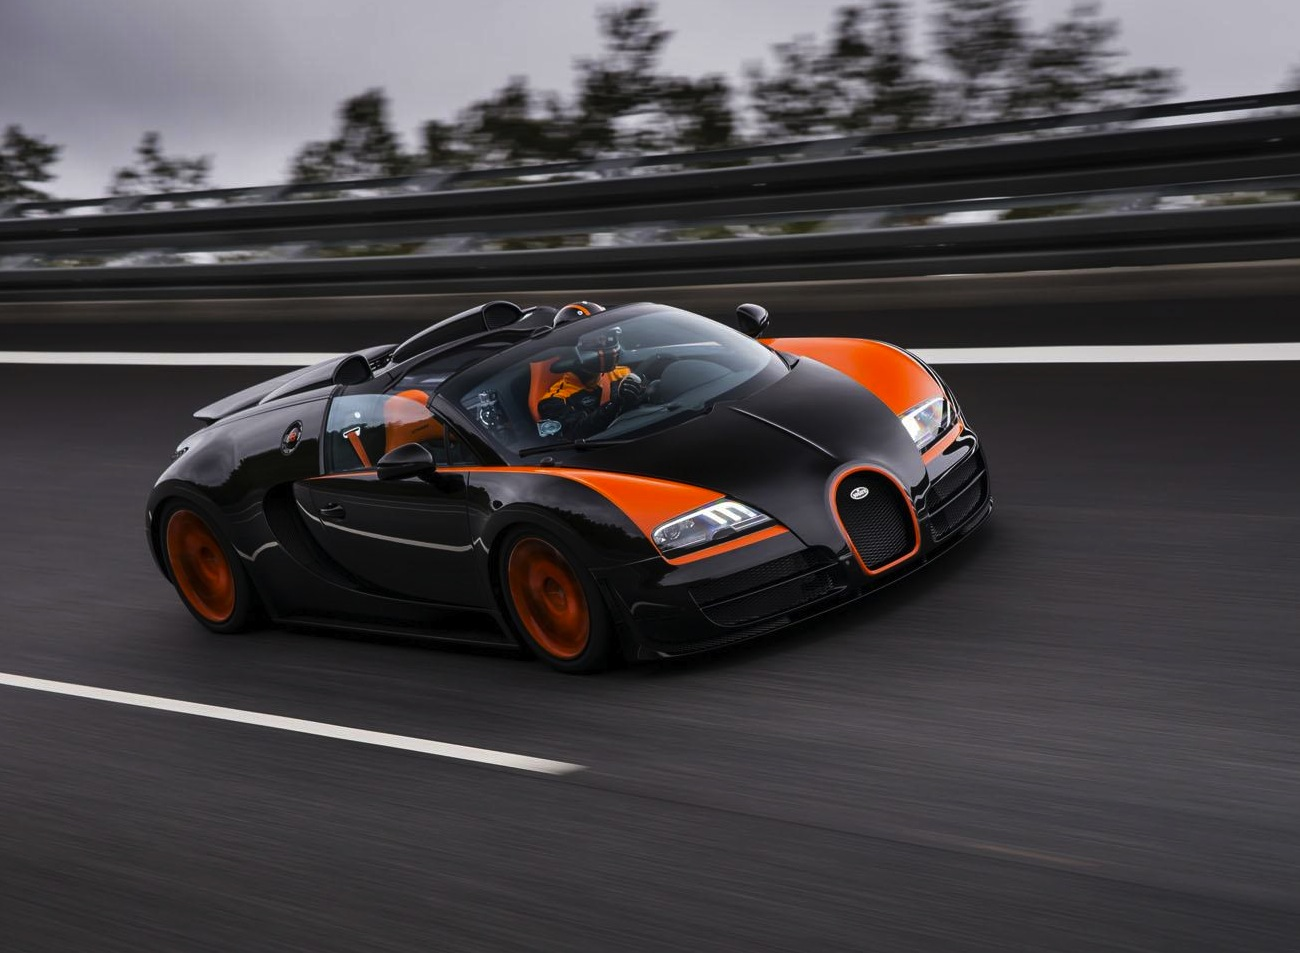 bugatti veyron grand sport vitesse wrc revealed. Black Bedroom Furniture Sets. Home Design Ideas